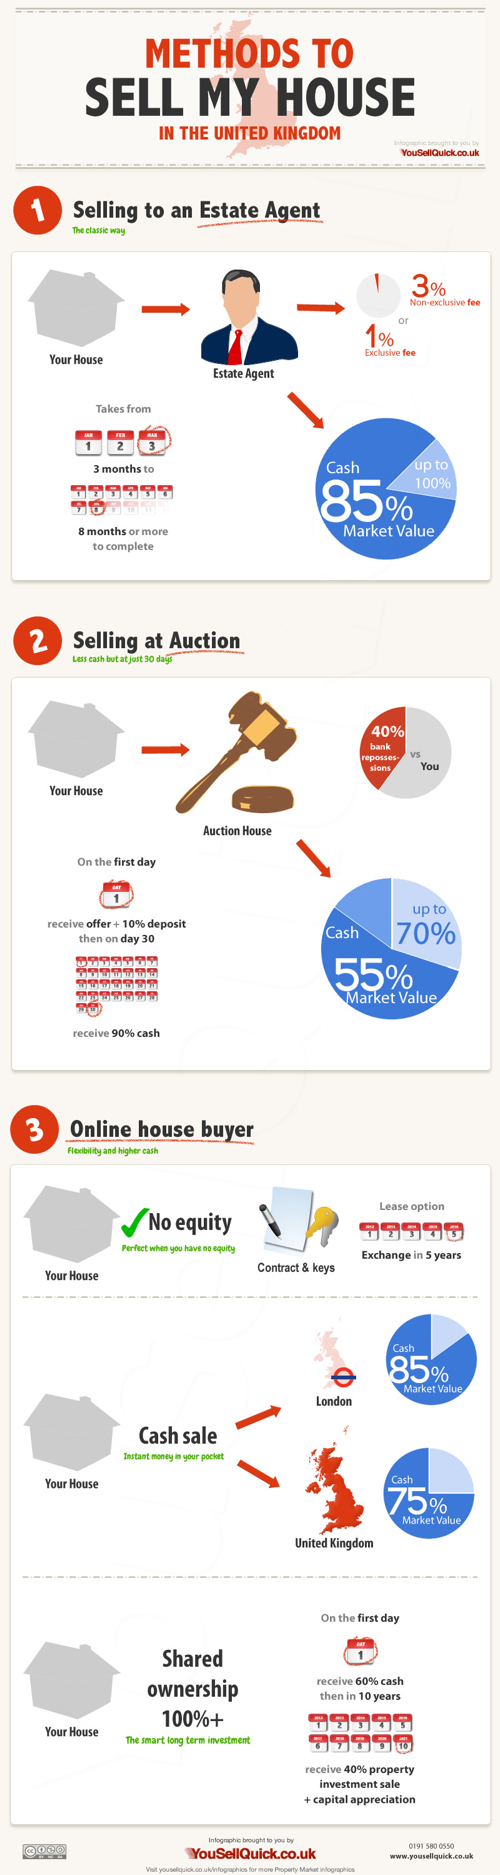 yousellquick-infographic-sell-my-house.jpg